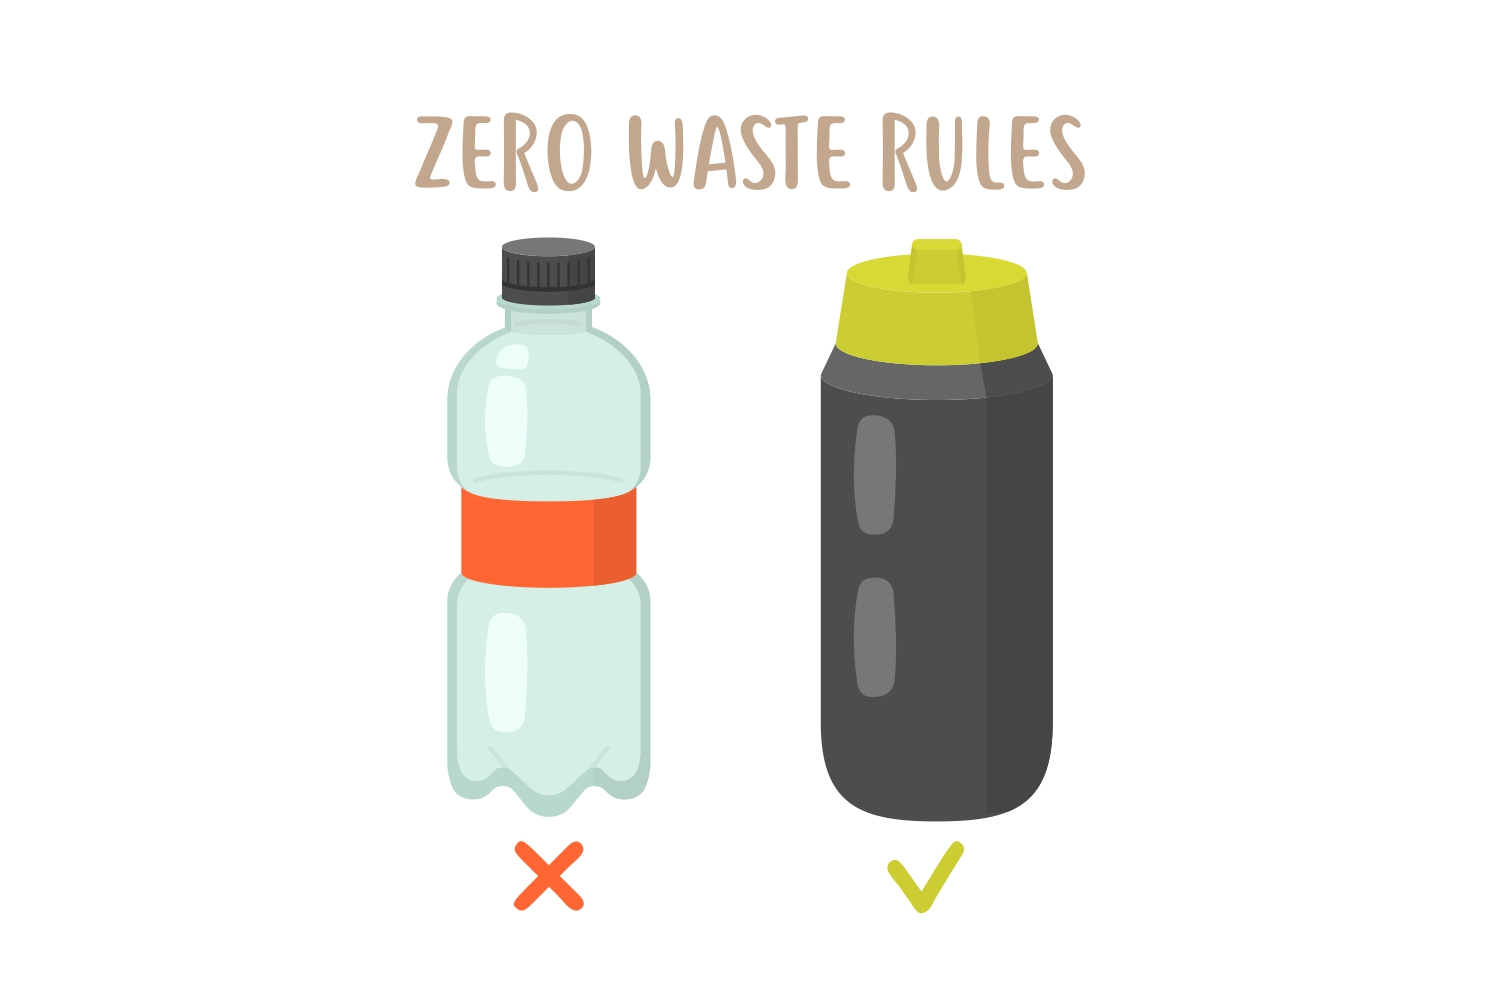 Zero waste rules example image 6